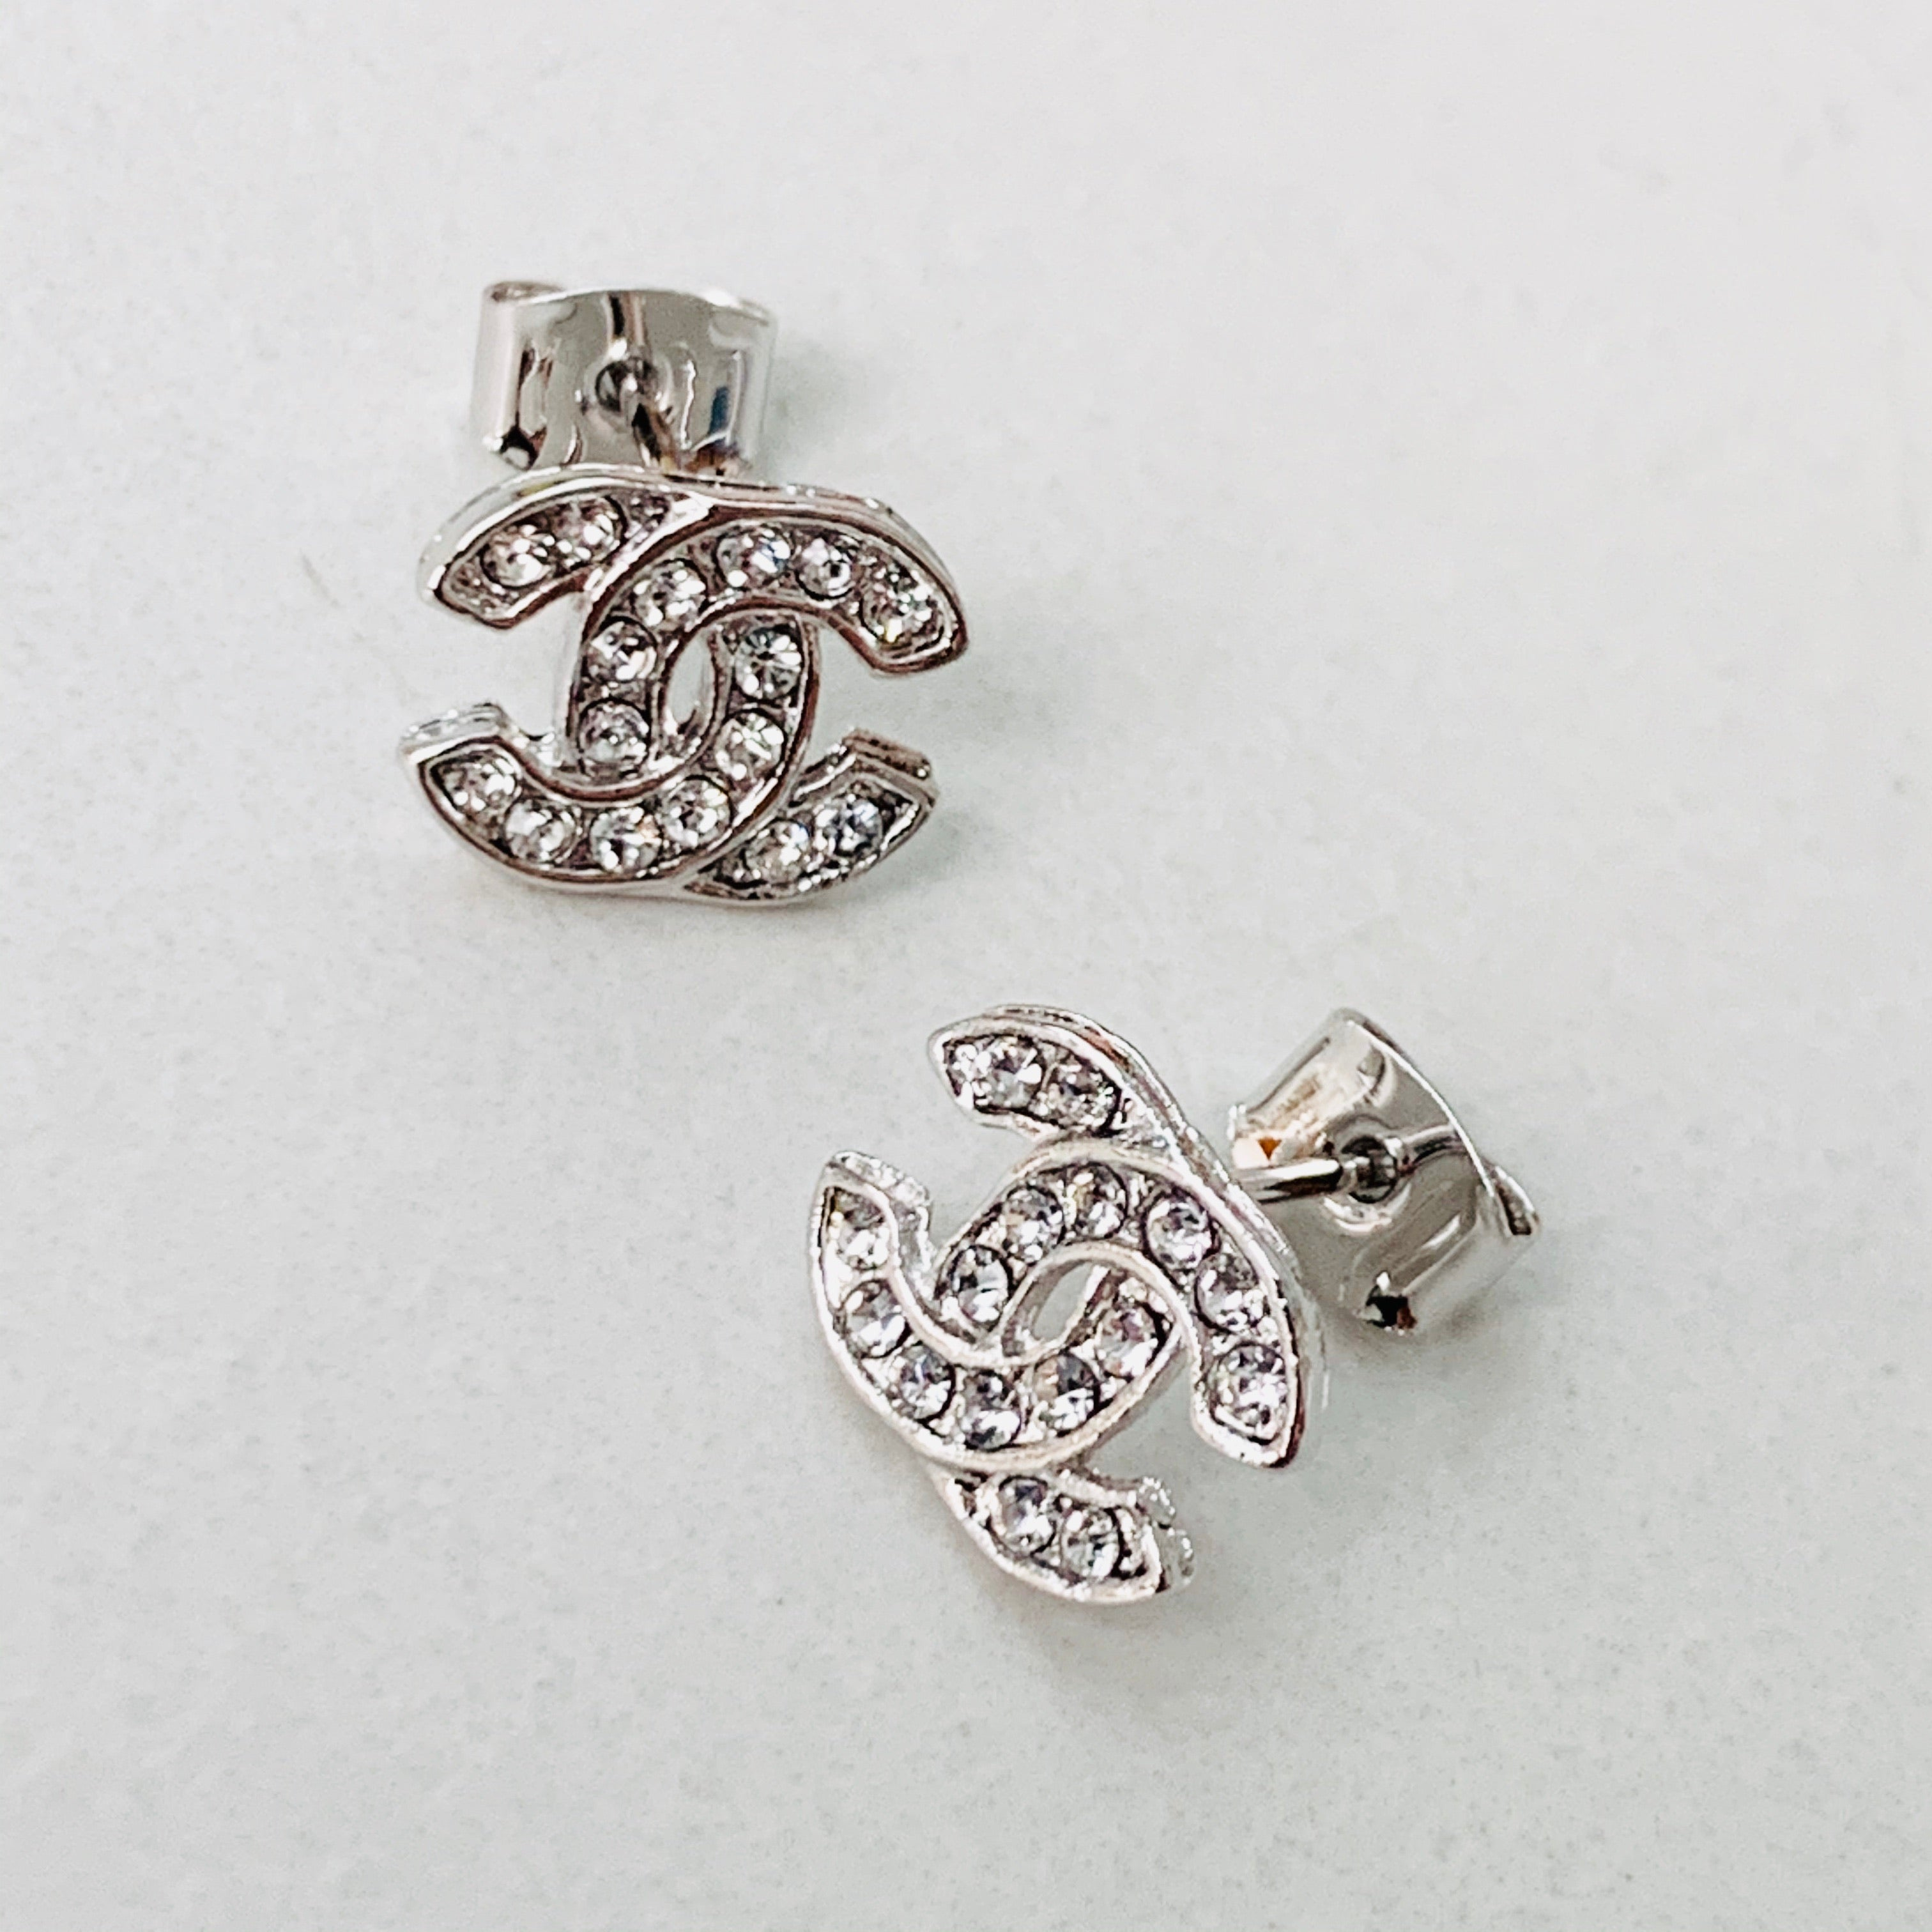 CC White Gold Crystal Stud Earrings